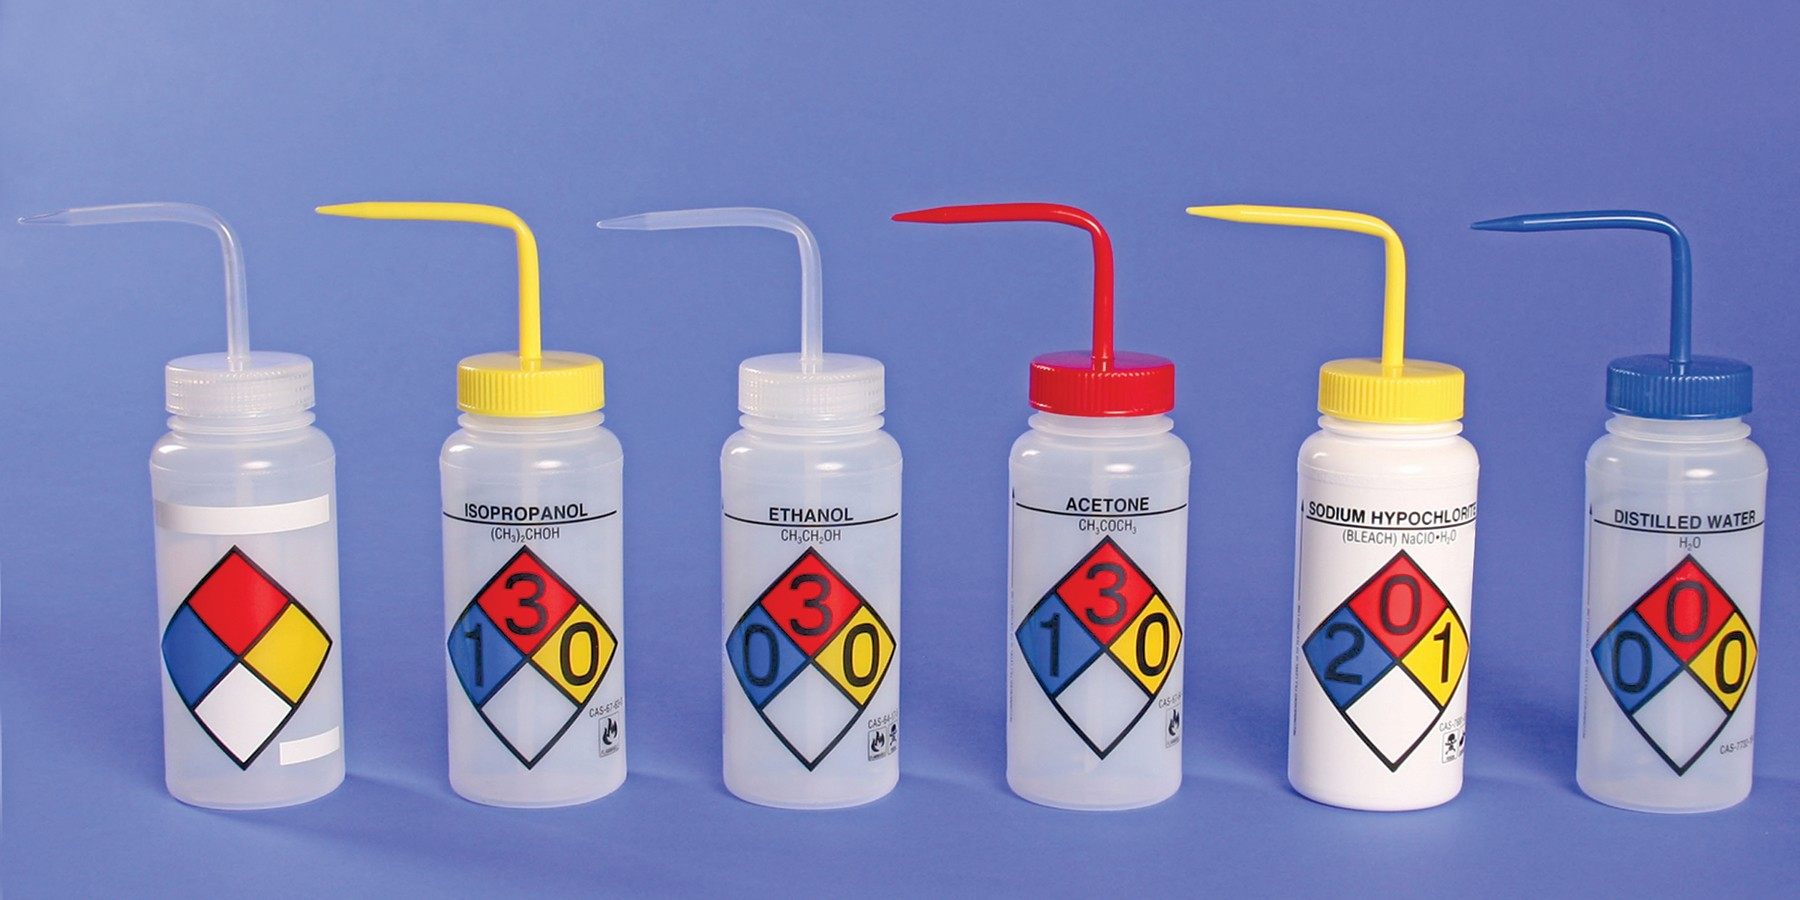 4-Color Wash bottles 1L (Ethanol) - Right-To-Know, wide-mouth (Pack of 4)